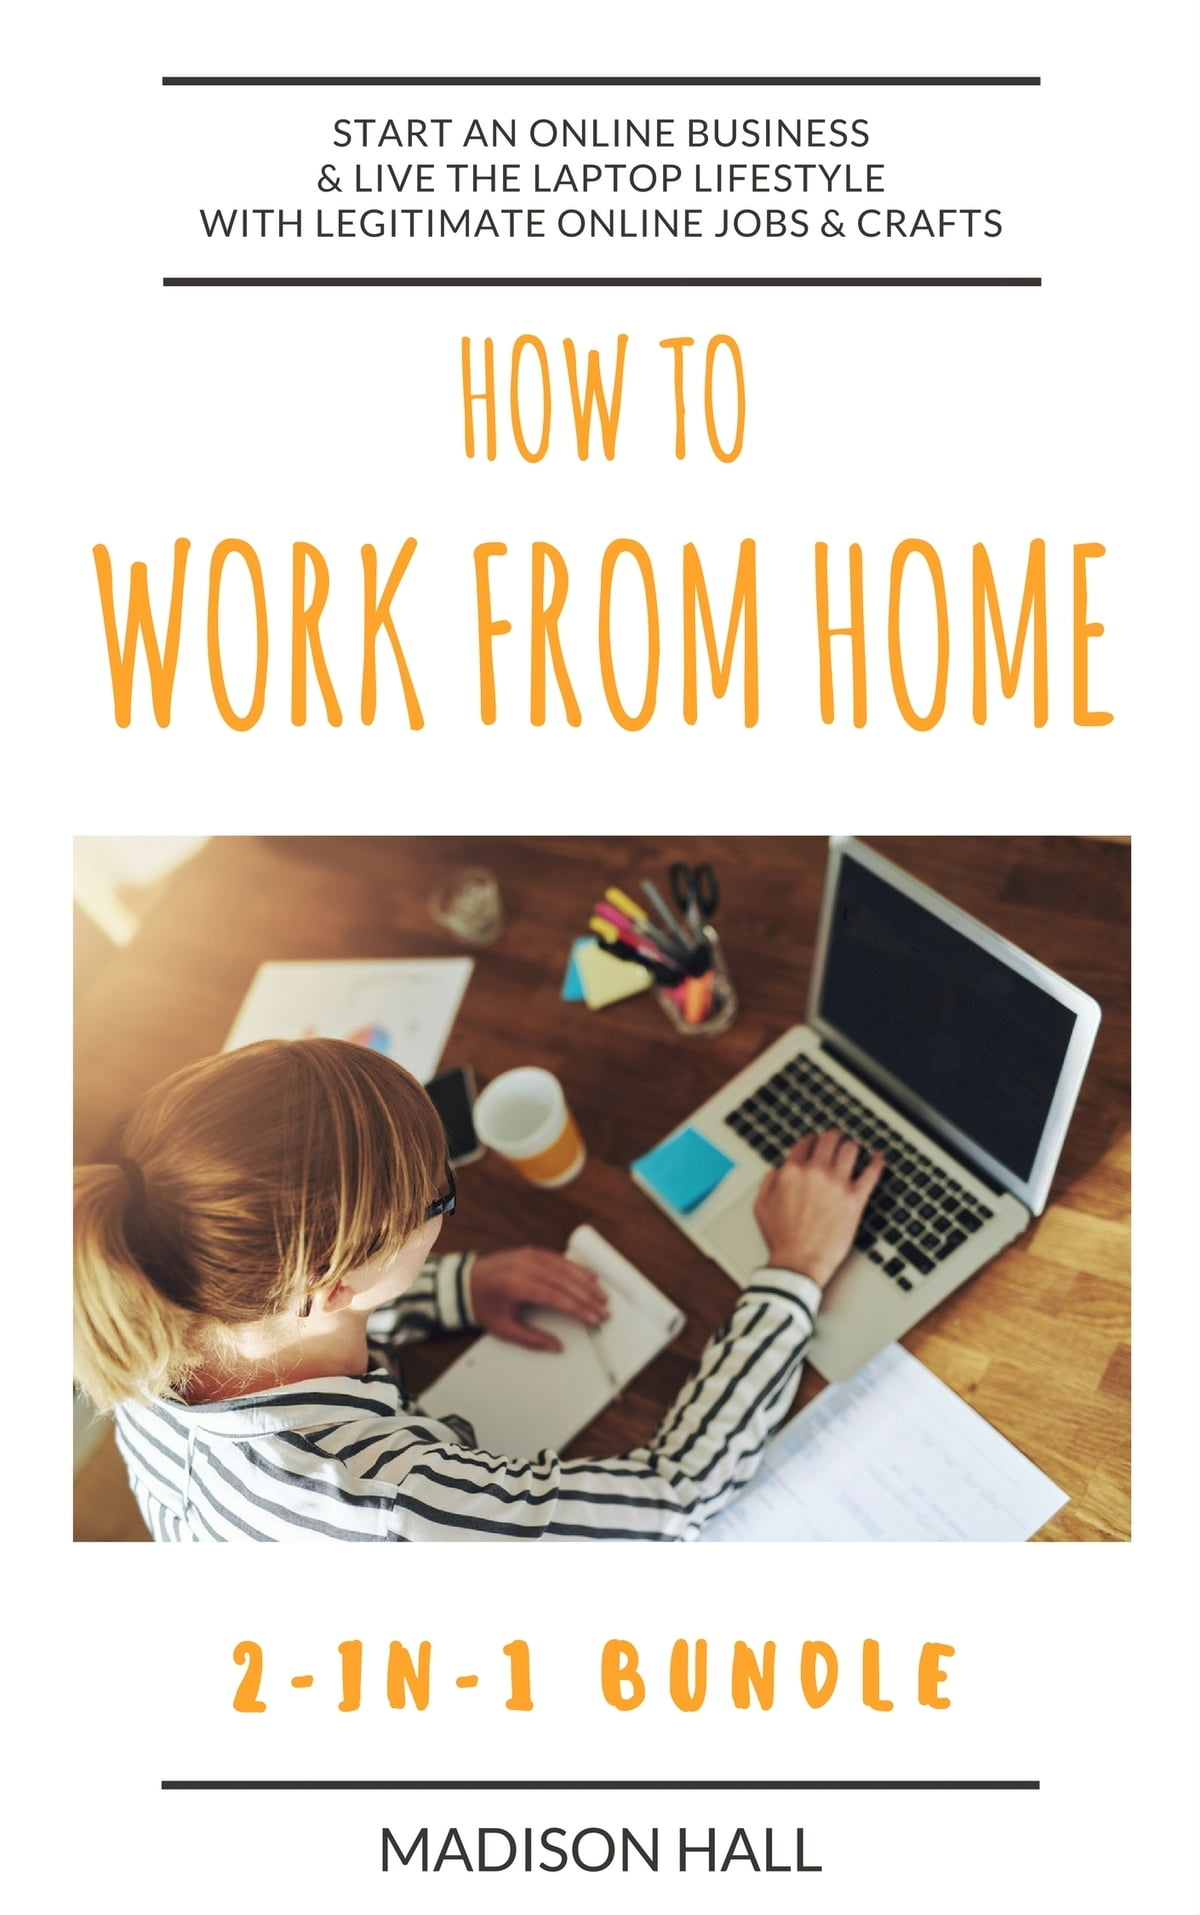 How To Work From Home (2-in-1 Bundle): Start An Online Business & Live The  Laptop Lifestyle With Legitimate Online Jobs & Crafts ebook by Madison Hall